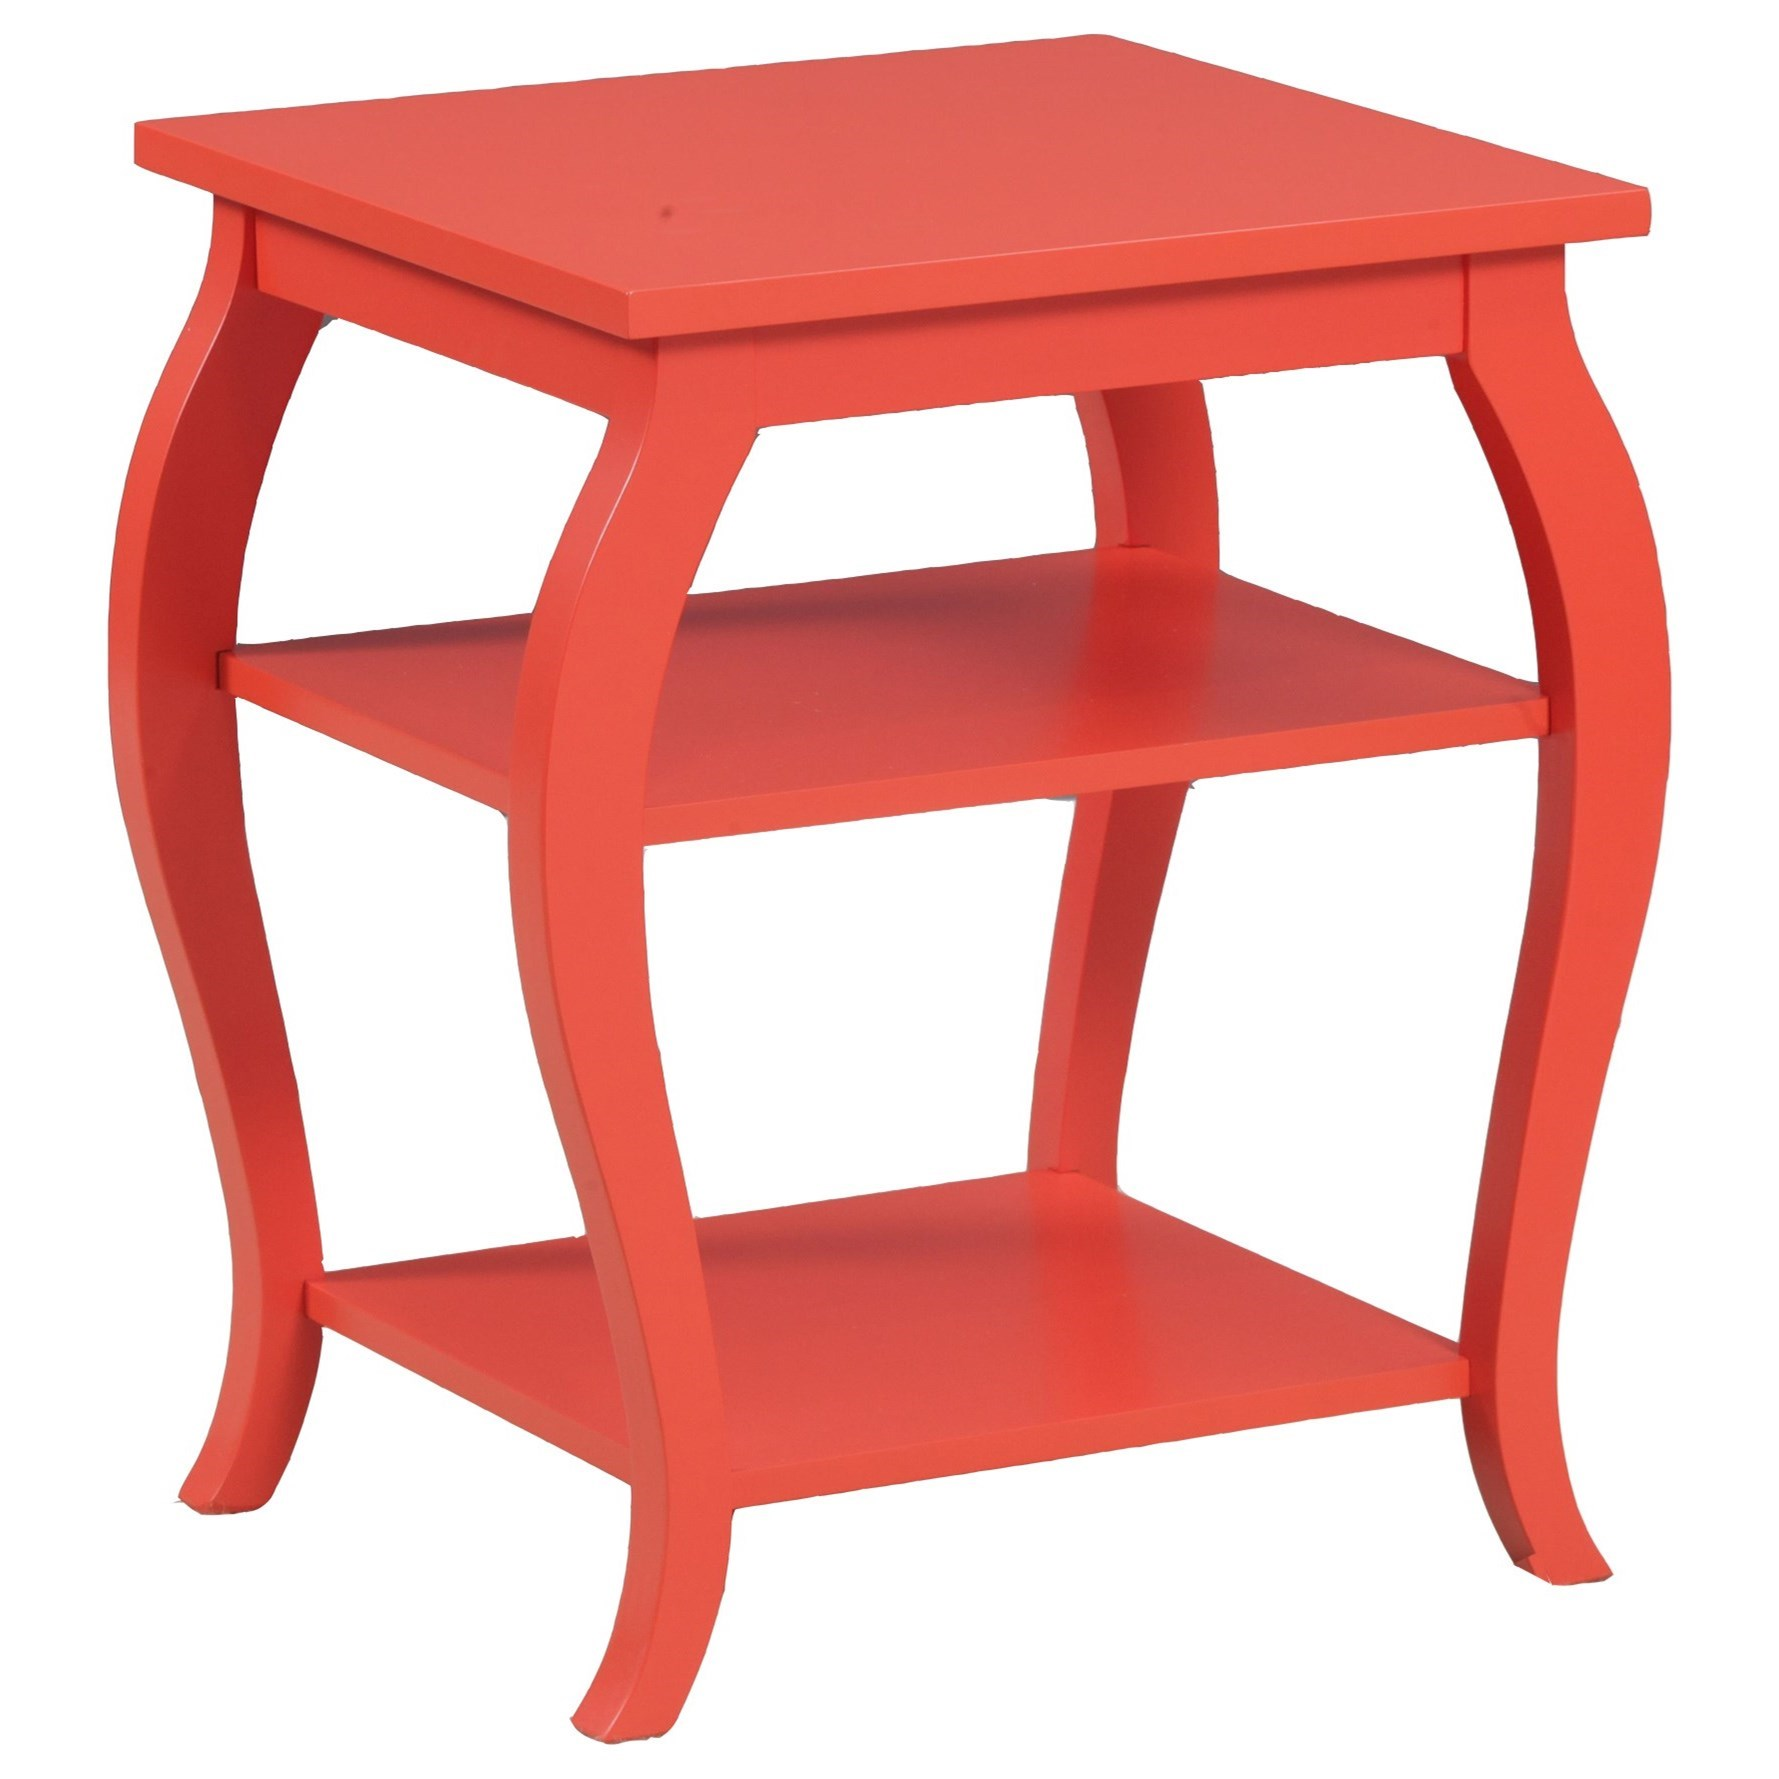 Accent Furniture Panorama Orange Table by Powell at Nassau Furniture and Mattress